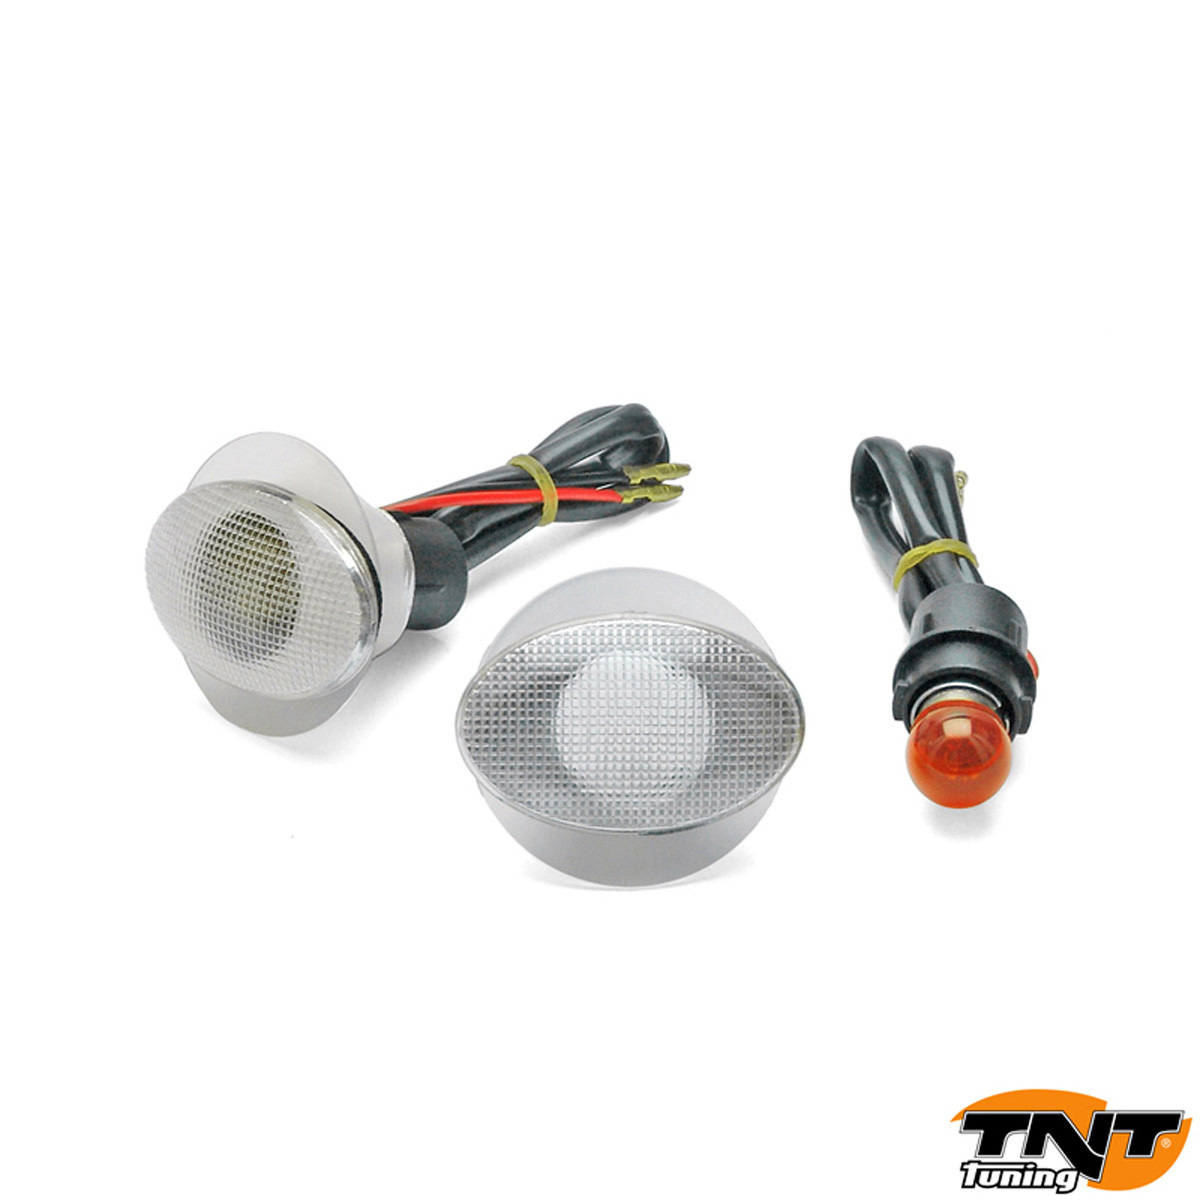 Clignotants Ovale Encastrables Transparent - TNT